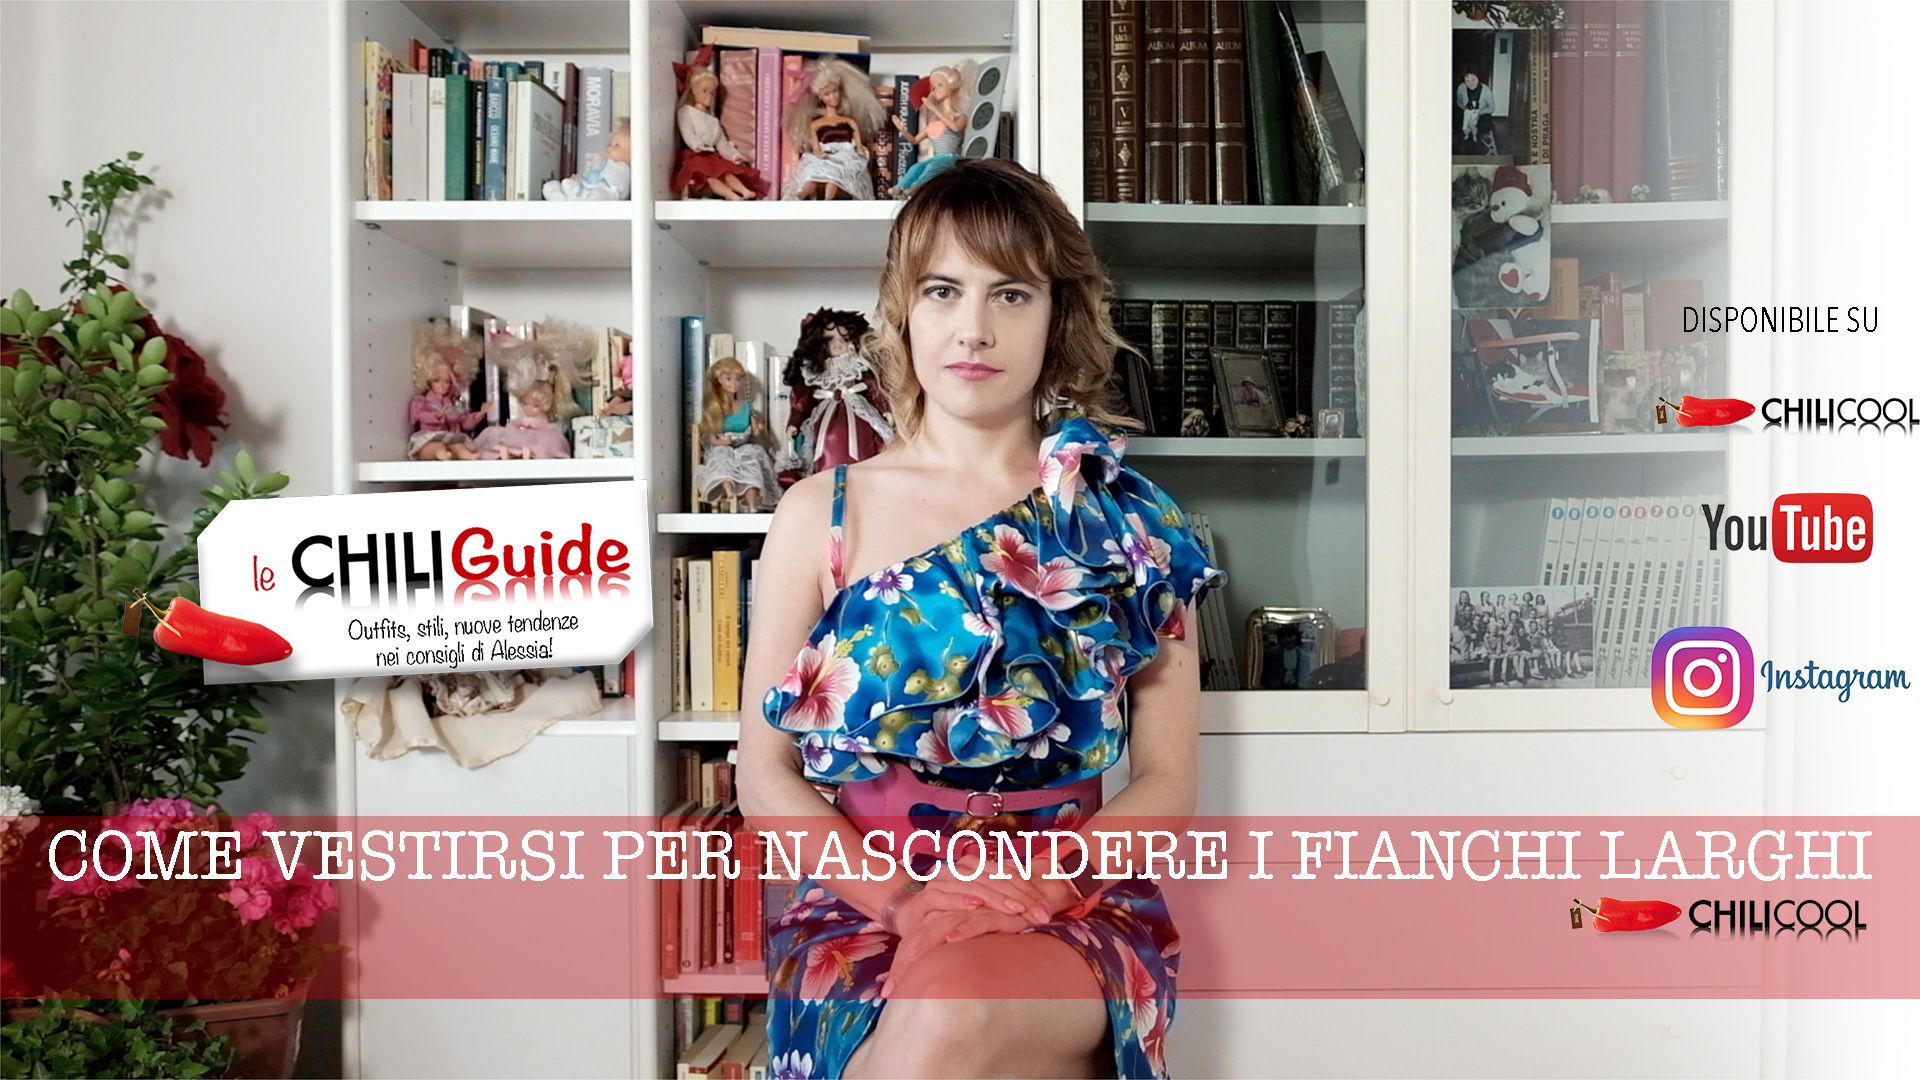 #ChiliGuide: come vestirsi per nascondere i fianchi larghi, alessia milanese, thechilicool, fashion blog, fashion blogger